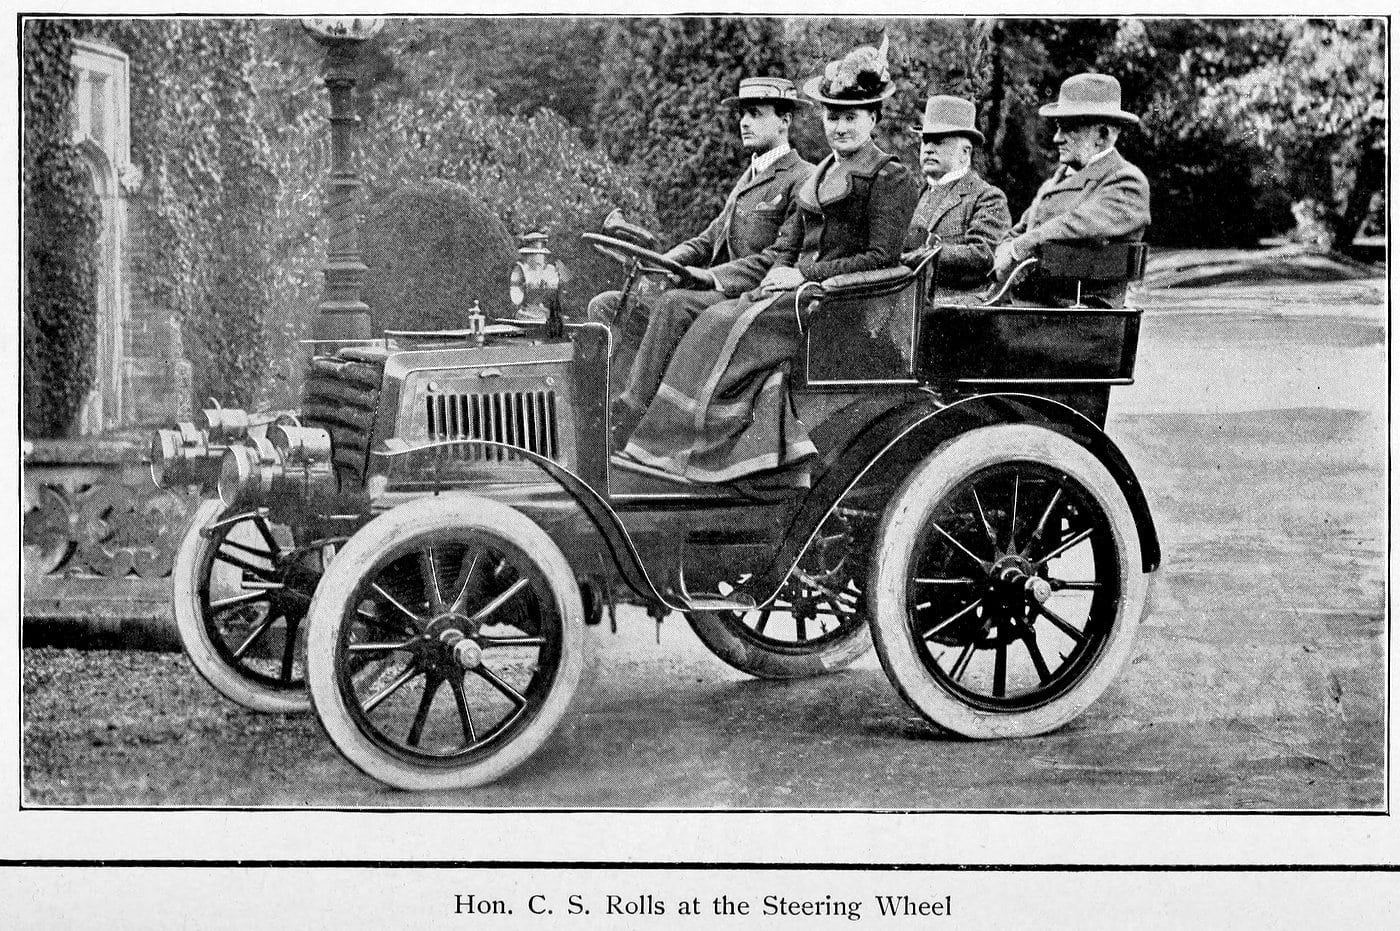 Hon. C.S. Rolls at the steering wheel (1902)